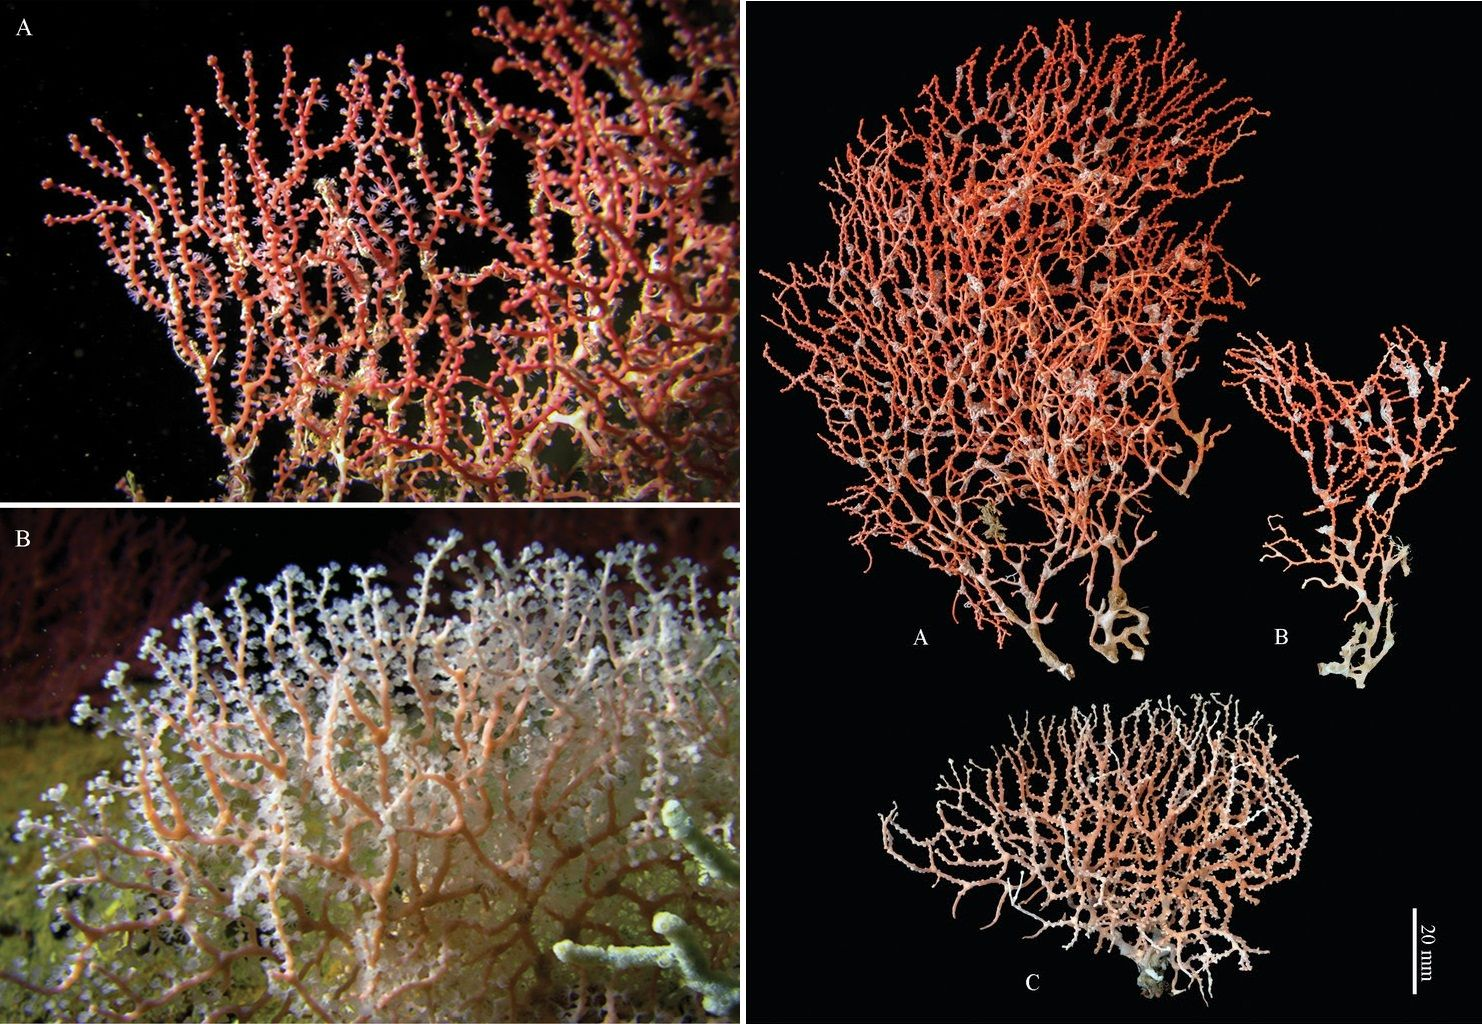 Melithaea davidi • A New Species of Melithaea (Anthozoa, Octocorallia, Melithaeidae) from the Oman Sea, off Oman